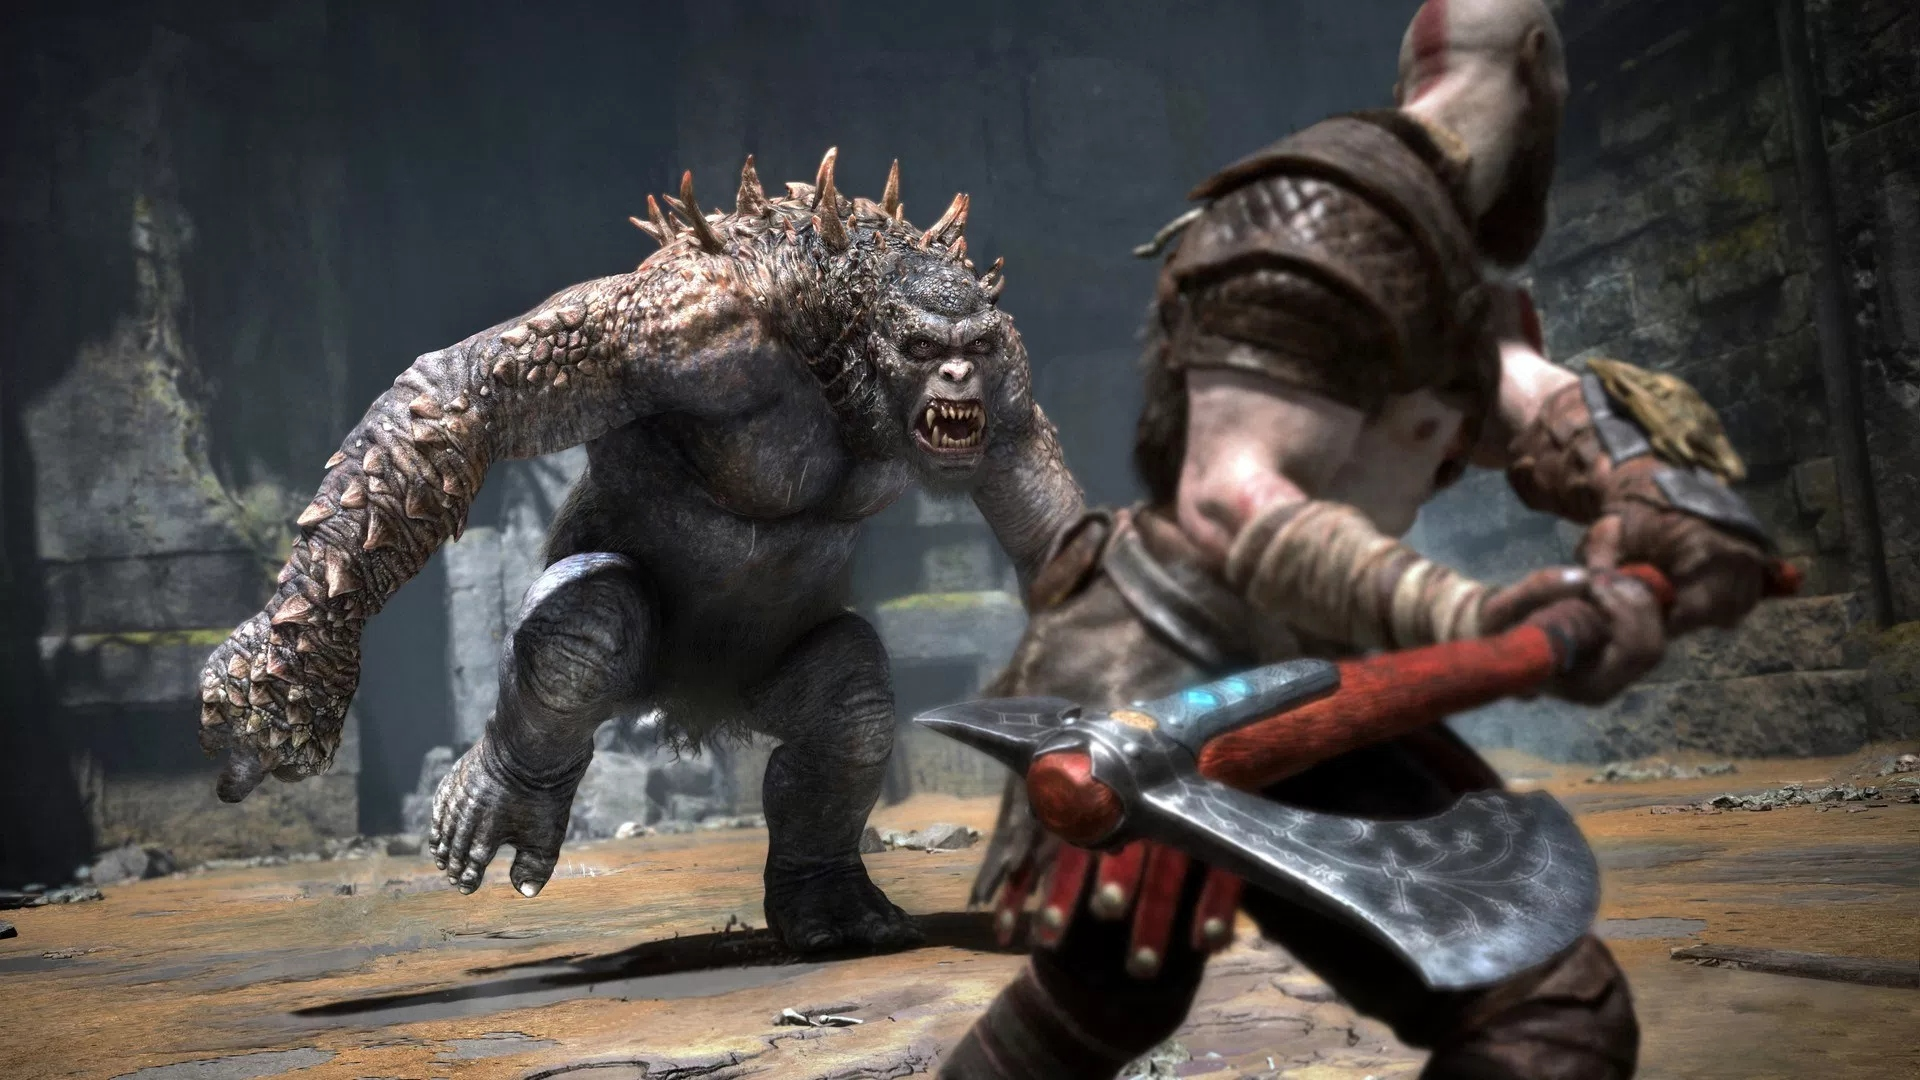 nvidia-geforce-now-leak-suggests-god-of-war-and-demon's-souls-inbound-for-pc